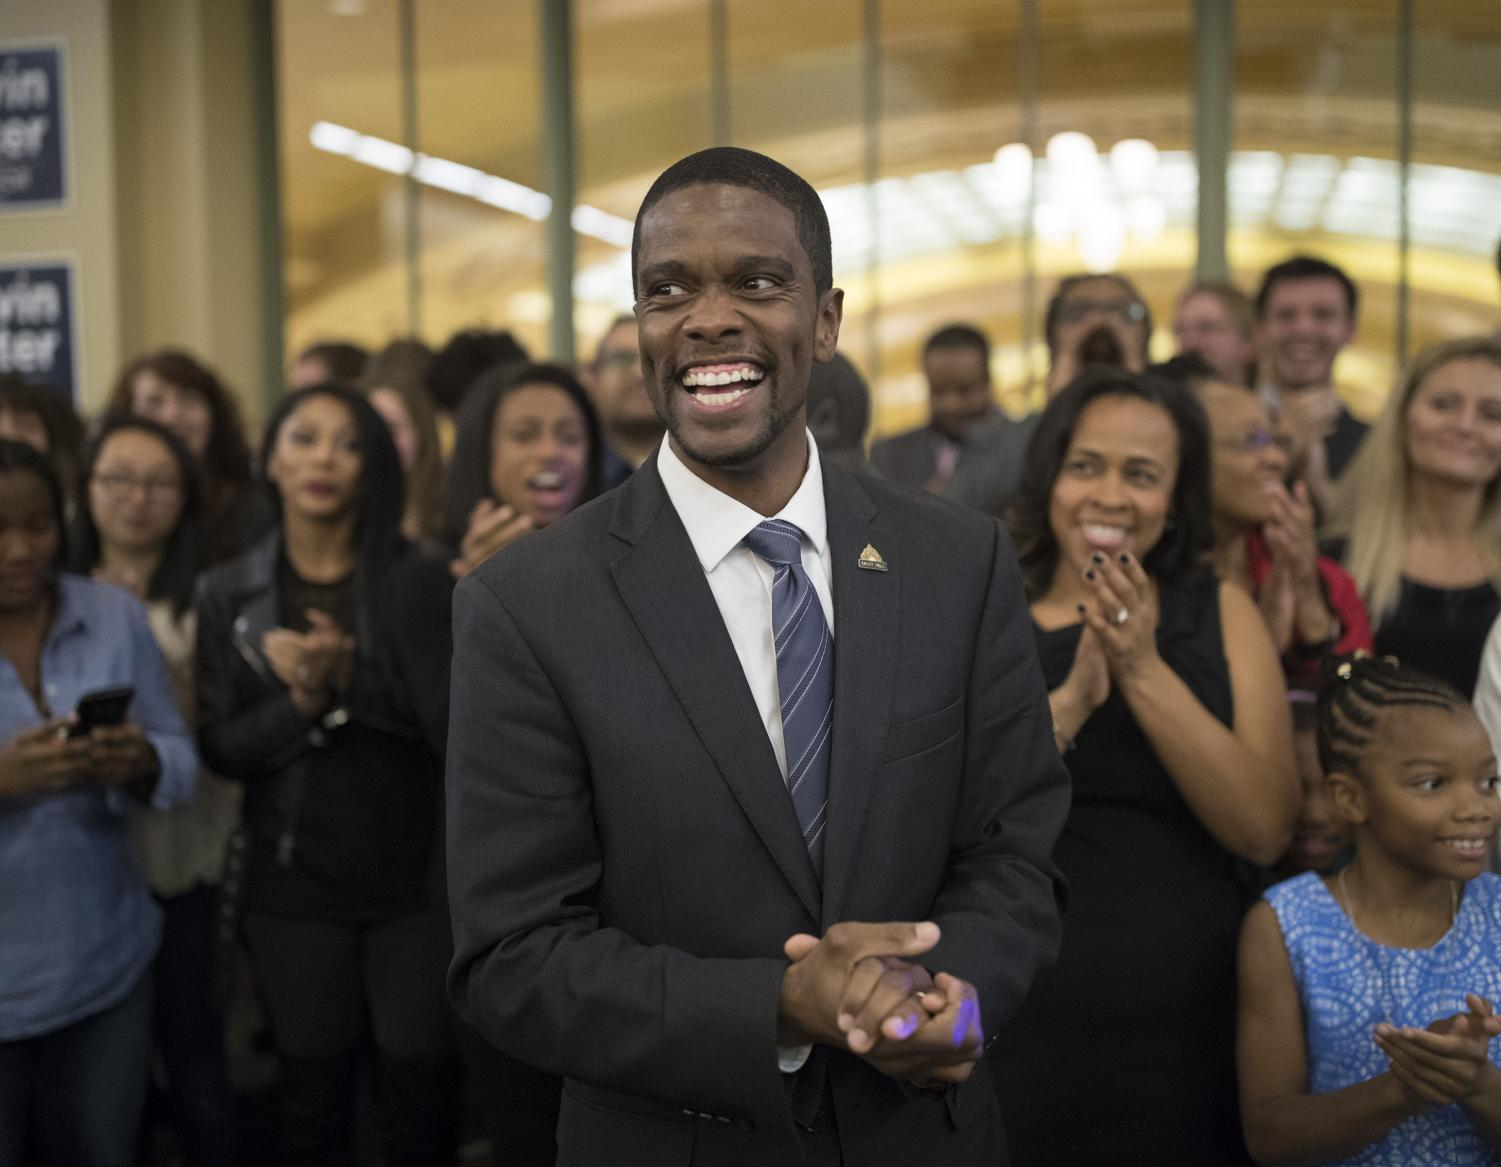 Opinion columnist Abbi Cobb recaps Tuesday's state and local election results, which saw many Democratic candidates come out on top in elections at every level across the country. Pictured above is Melvin Carter, who became the first black mayor of St. Paul, Minnesota on Tuesday.